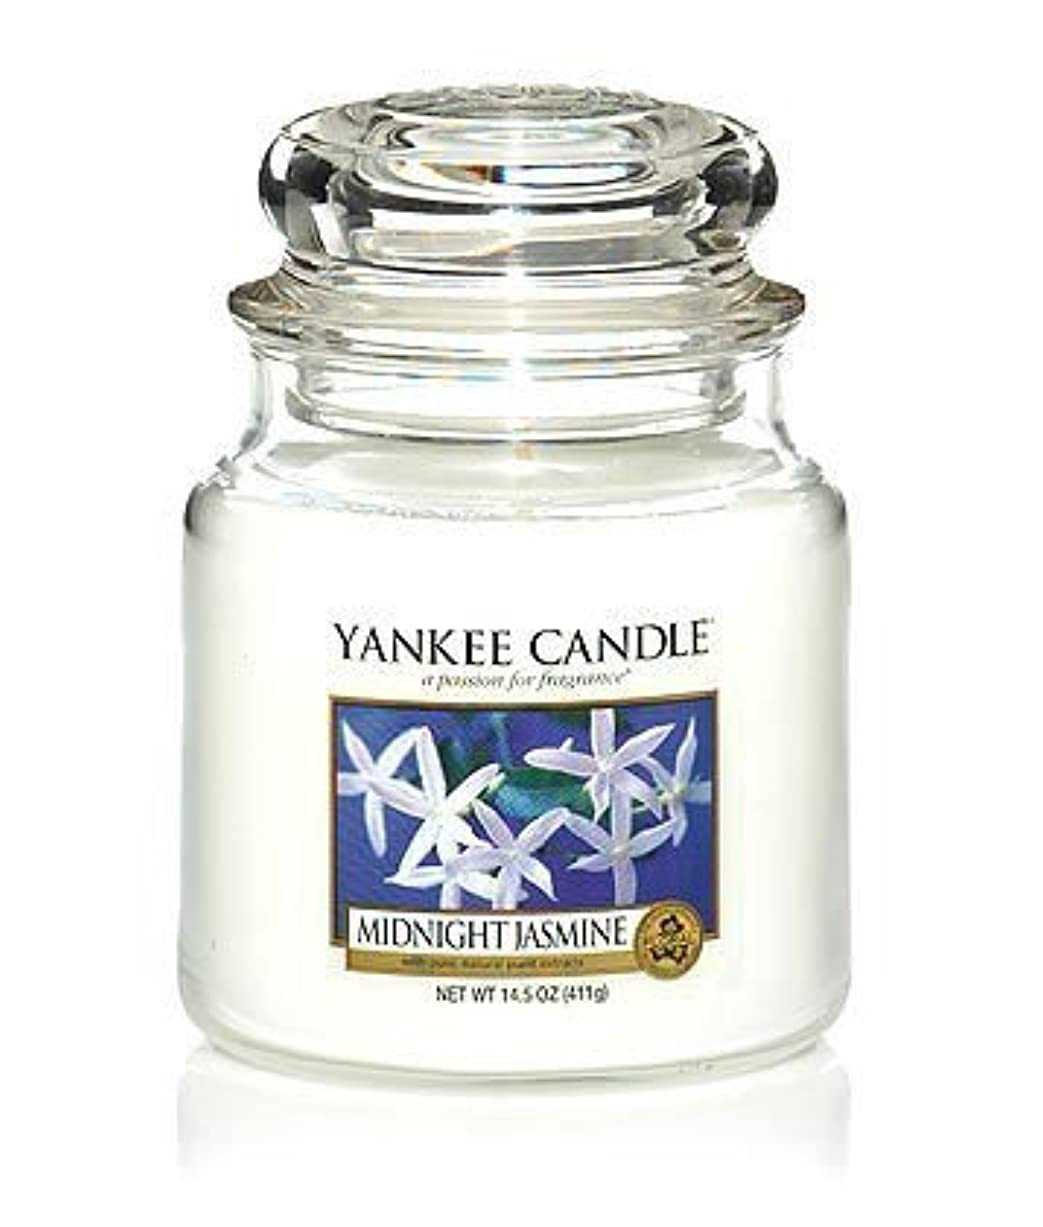 レガシー成果バッフルYankee Candle Midnight Jasmine Medium Jar Candle, Floral Scent by Yankee Candle [並行輸入品]